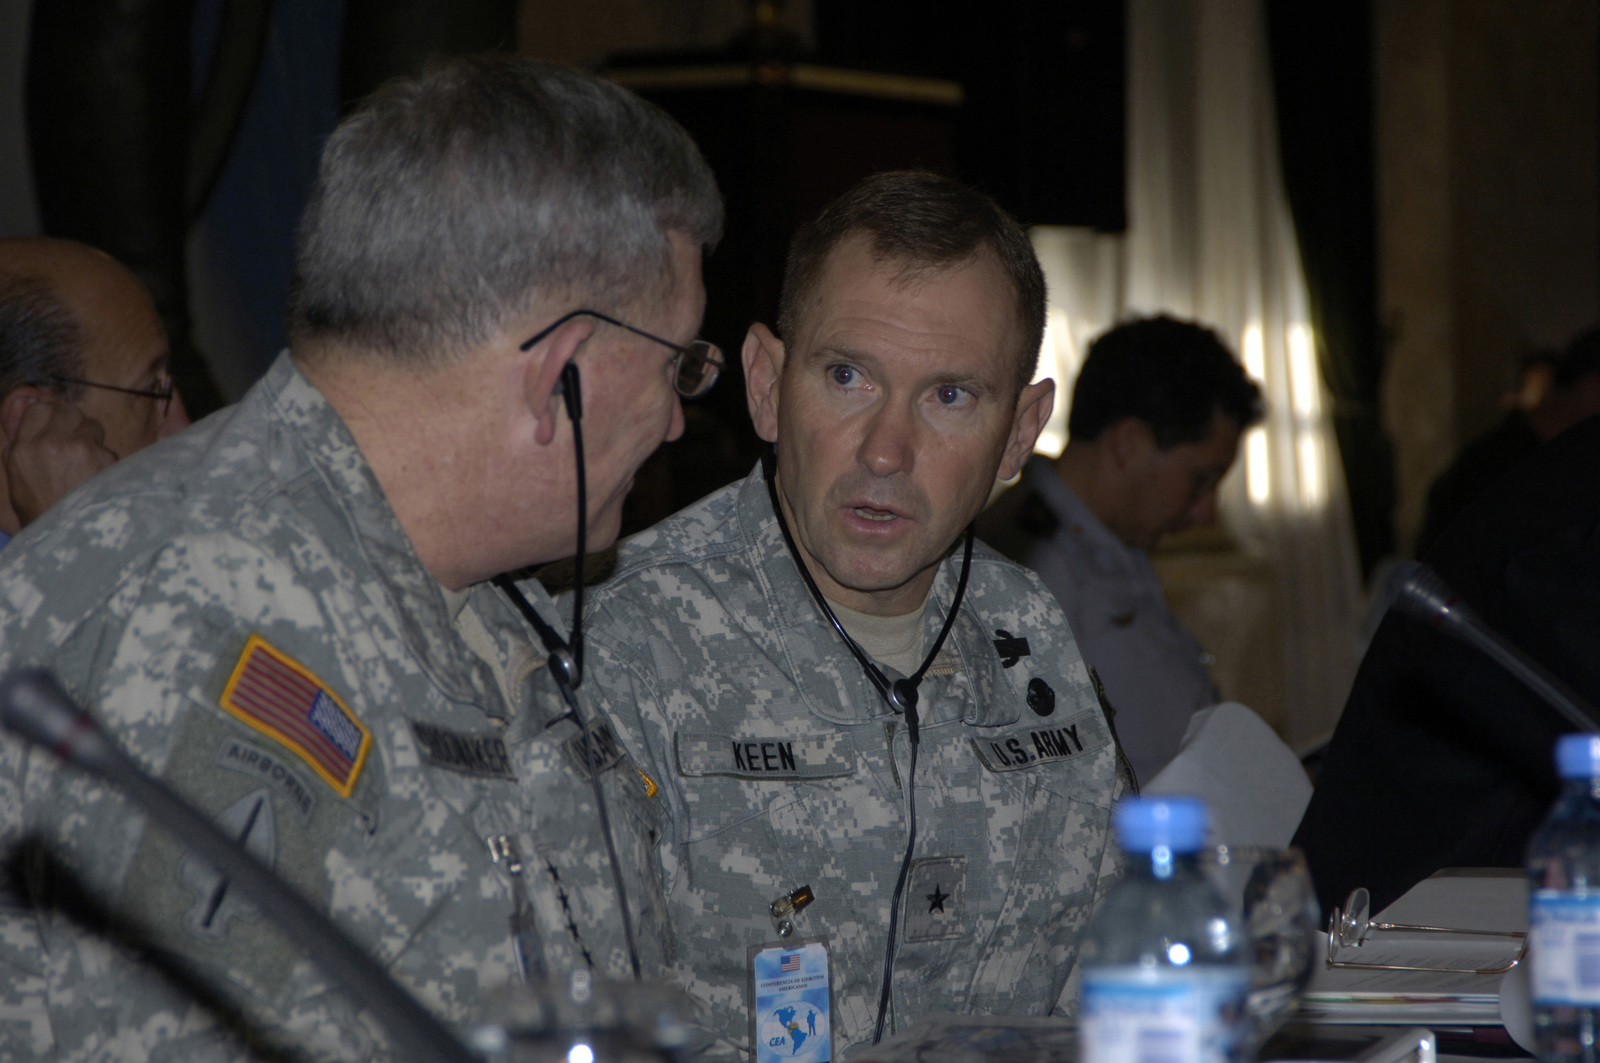 Brig. GEN. Purl K. Keen, U.S. Army South Commanding General, right, talks to GEN. Peter A. Schoomaker, CHIEF of STAFF, U.S. Army, left, during the Conference of American Armies Commander's Conference in Buenos Aires, Argentina on Nov. 3, 2005. (U.S. Army photo by Kaye Richey) (Released)